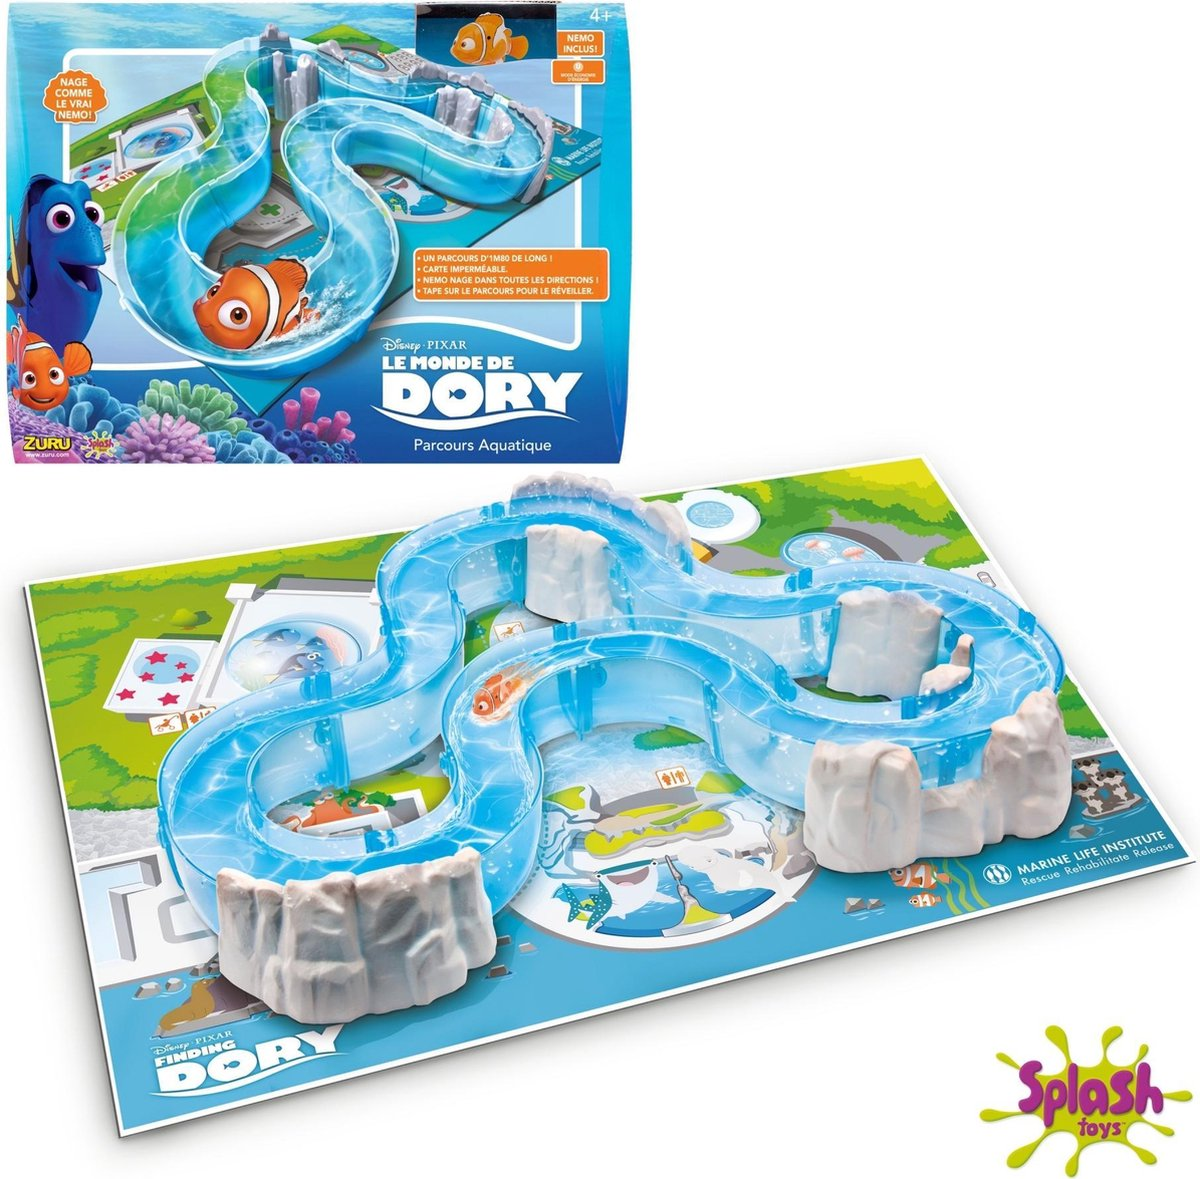 Splash Toys 31251 - Route Fish / Nemo - Finding Dory Water Parcour Speelgoed - Robo Fish